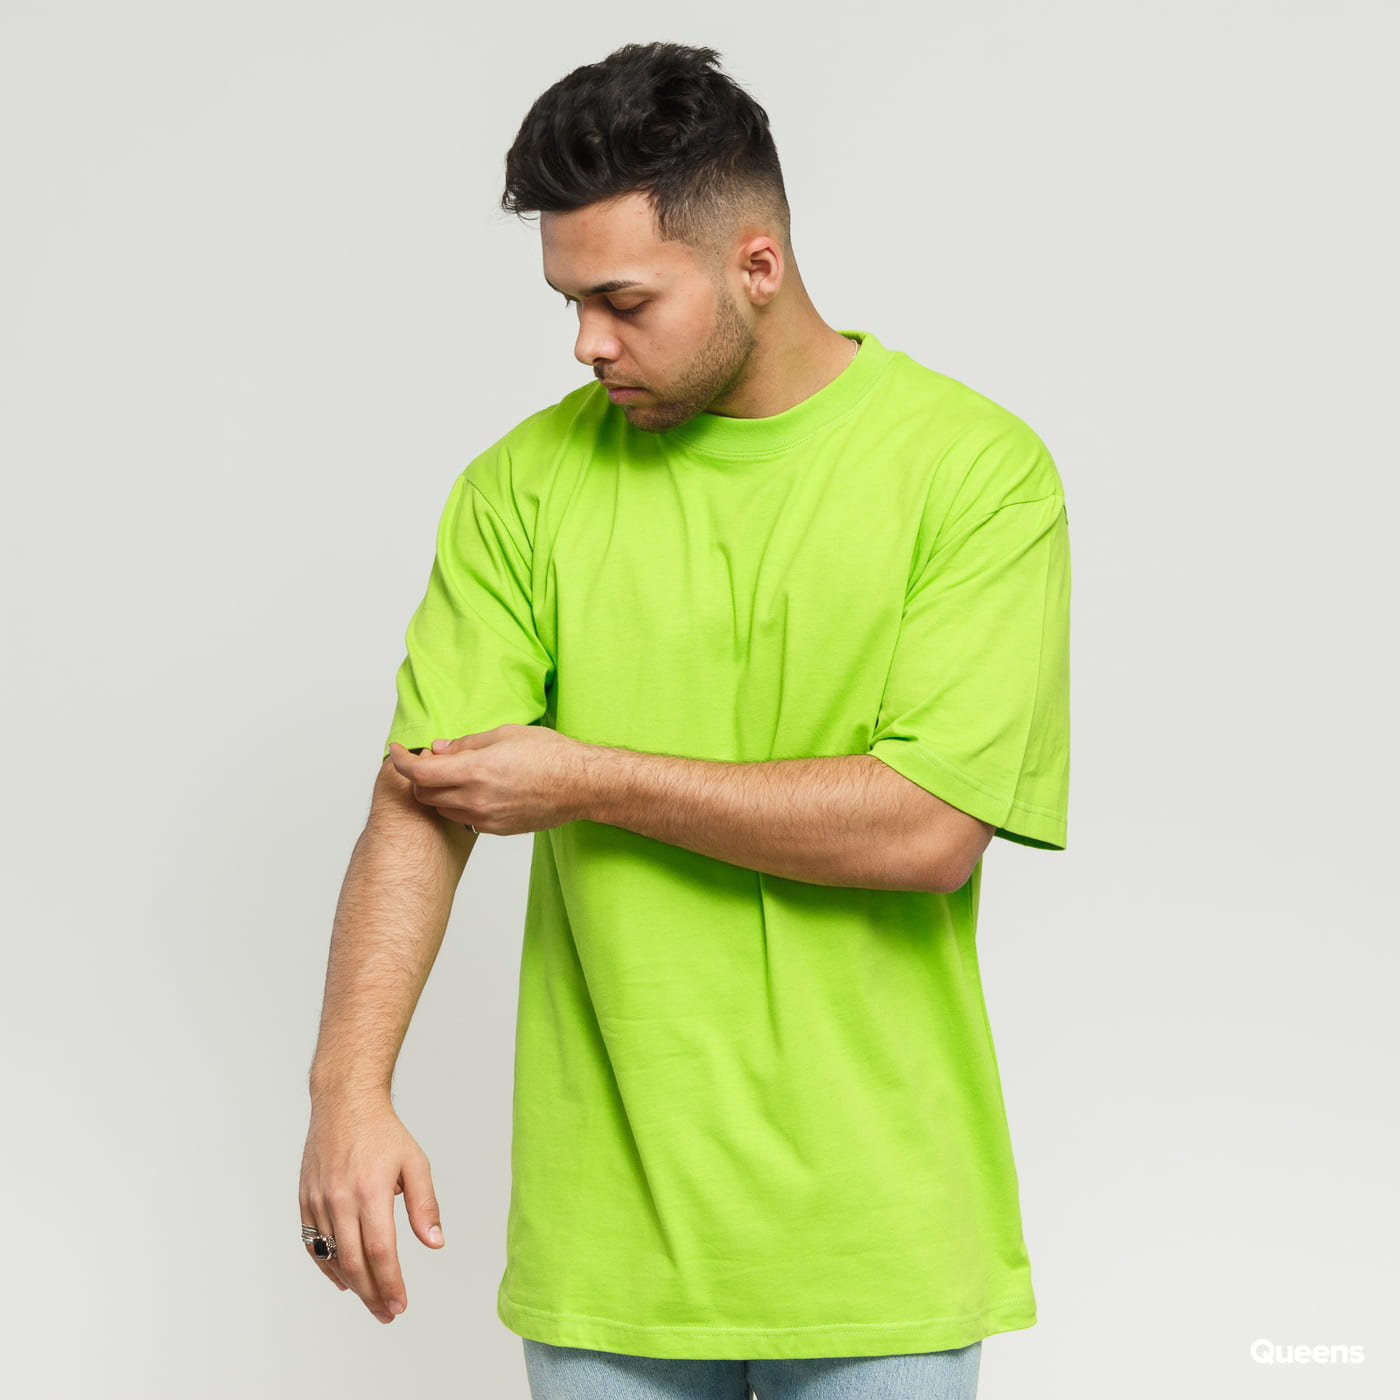 Urban Classics Tall Tee light green